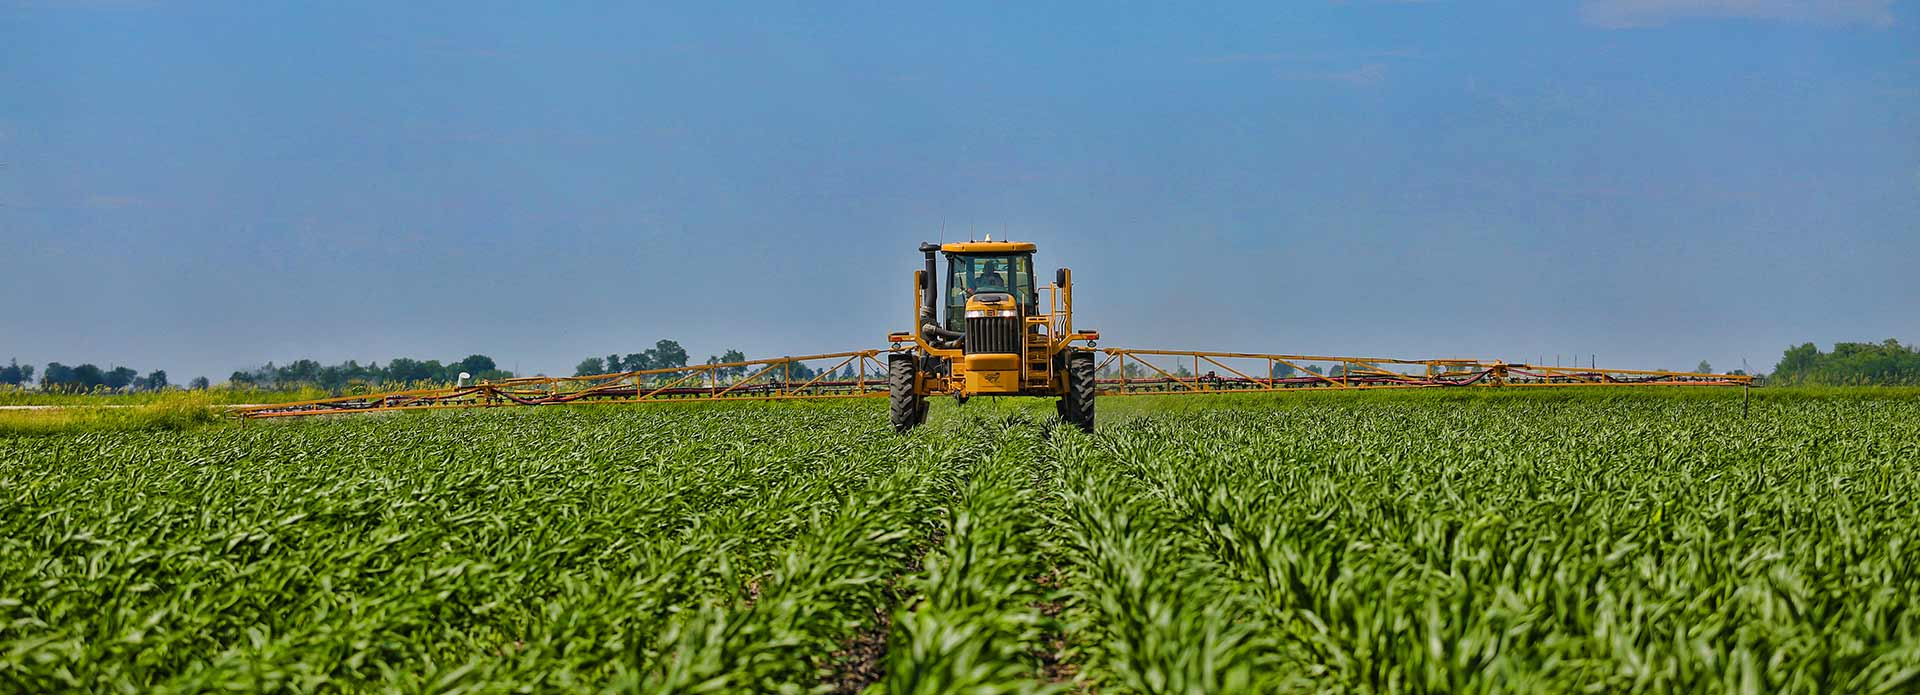 Eldon-C-Stutsman-Inc-Agronomy-Spraying-Corn